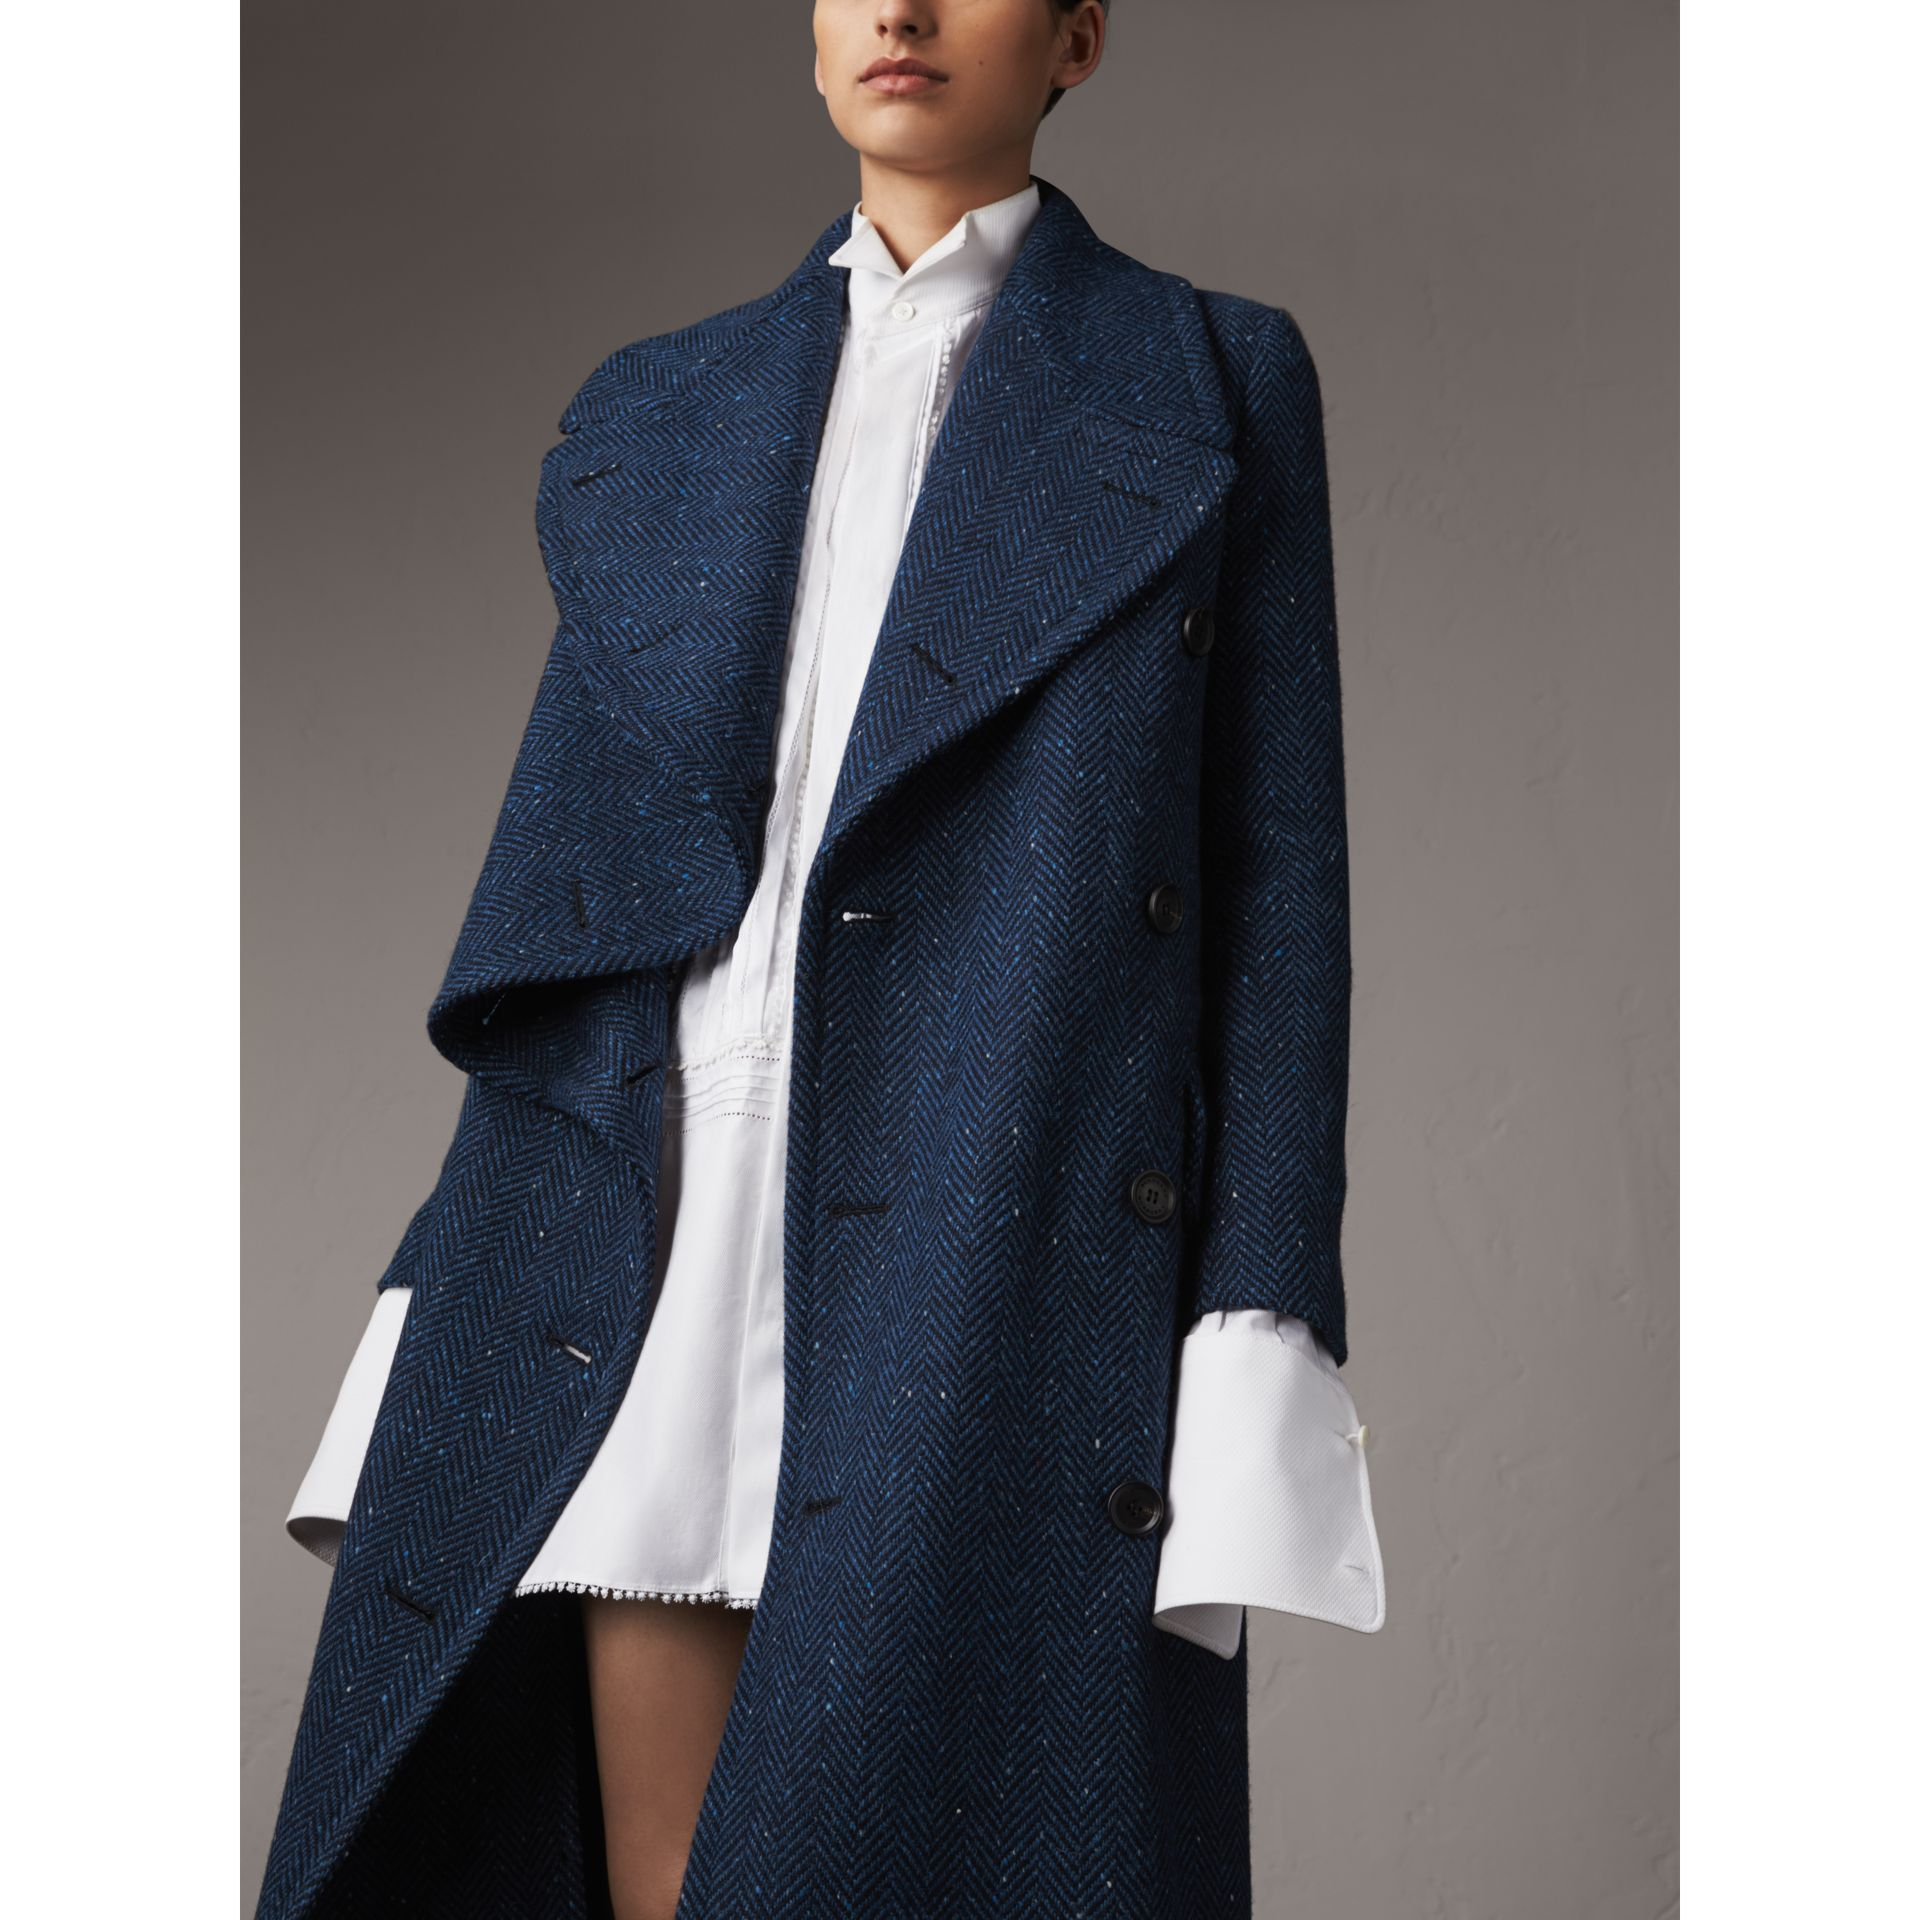 Herringbone Wool Cashmere Tweed Asymmetric Coat in Navy - Women | Burberry - gallery image 5